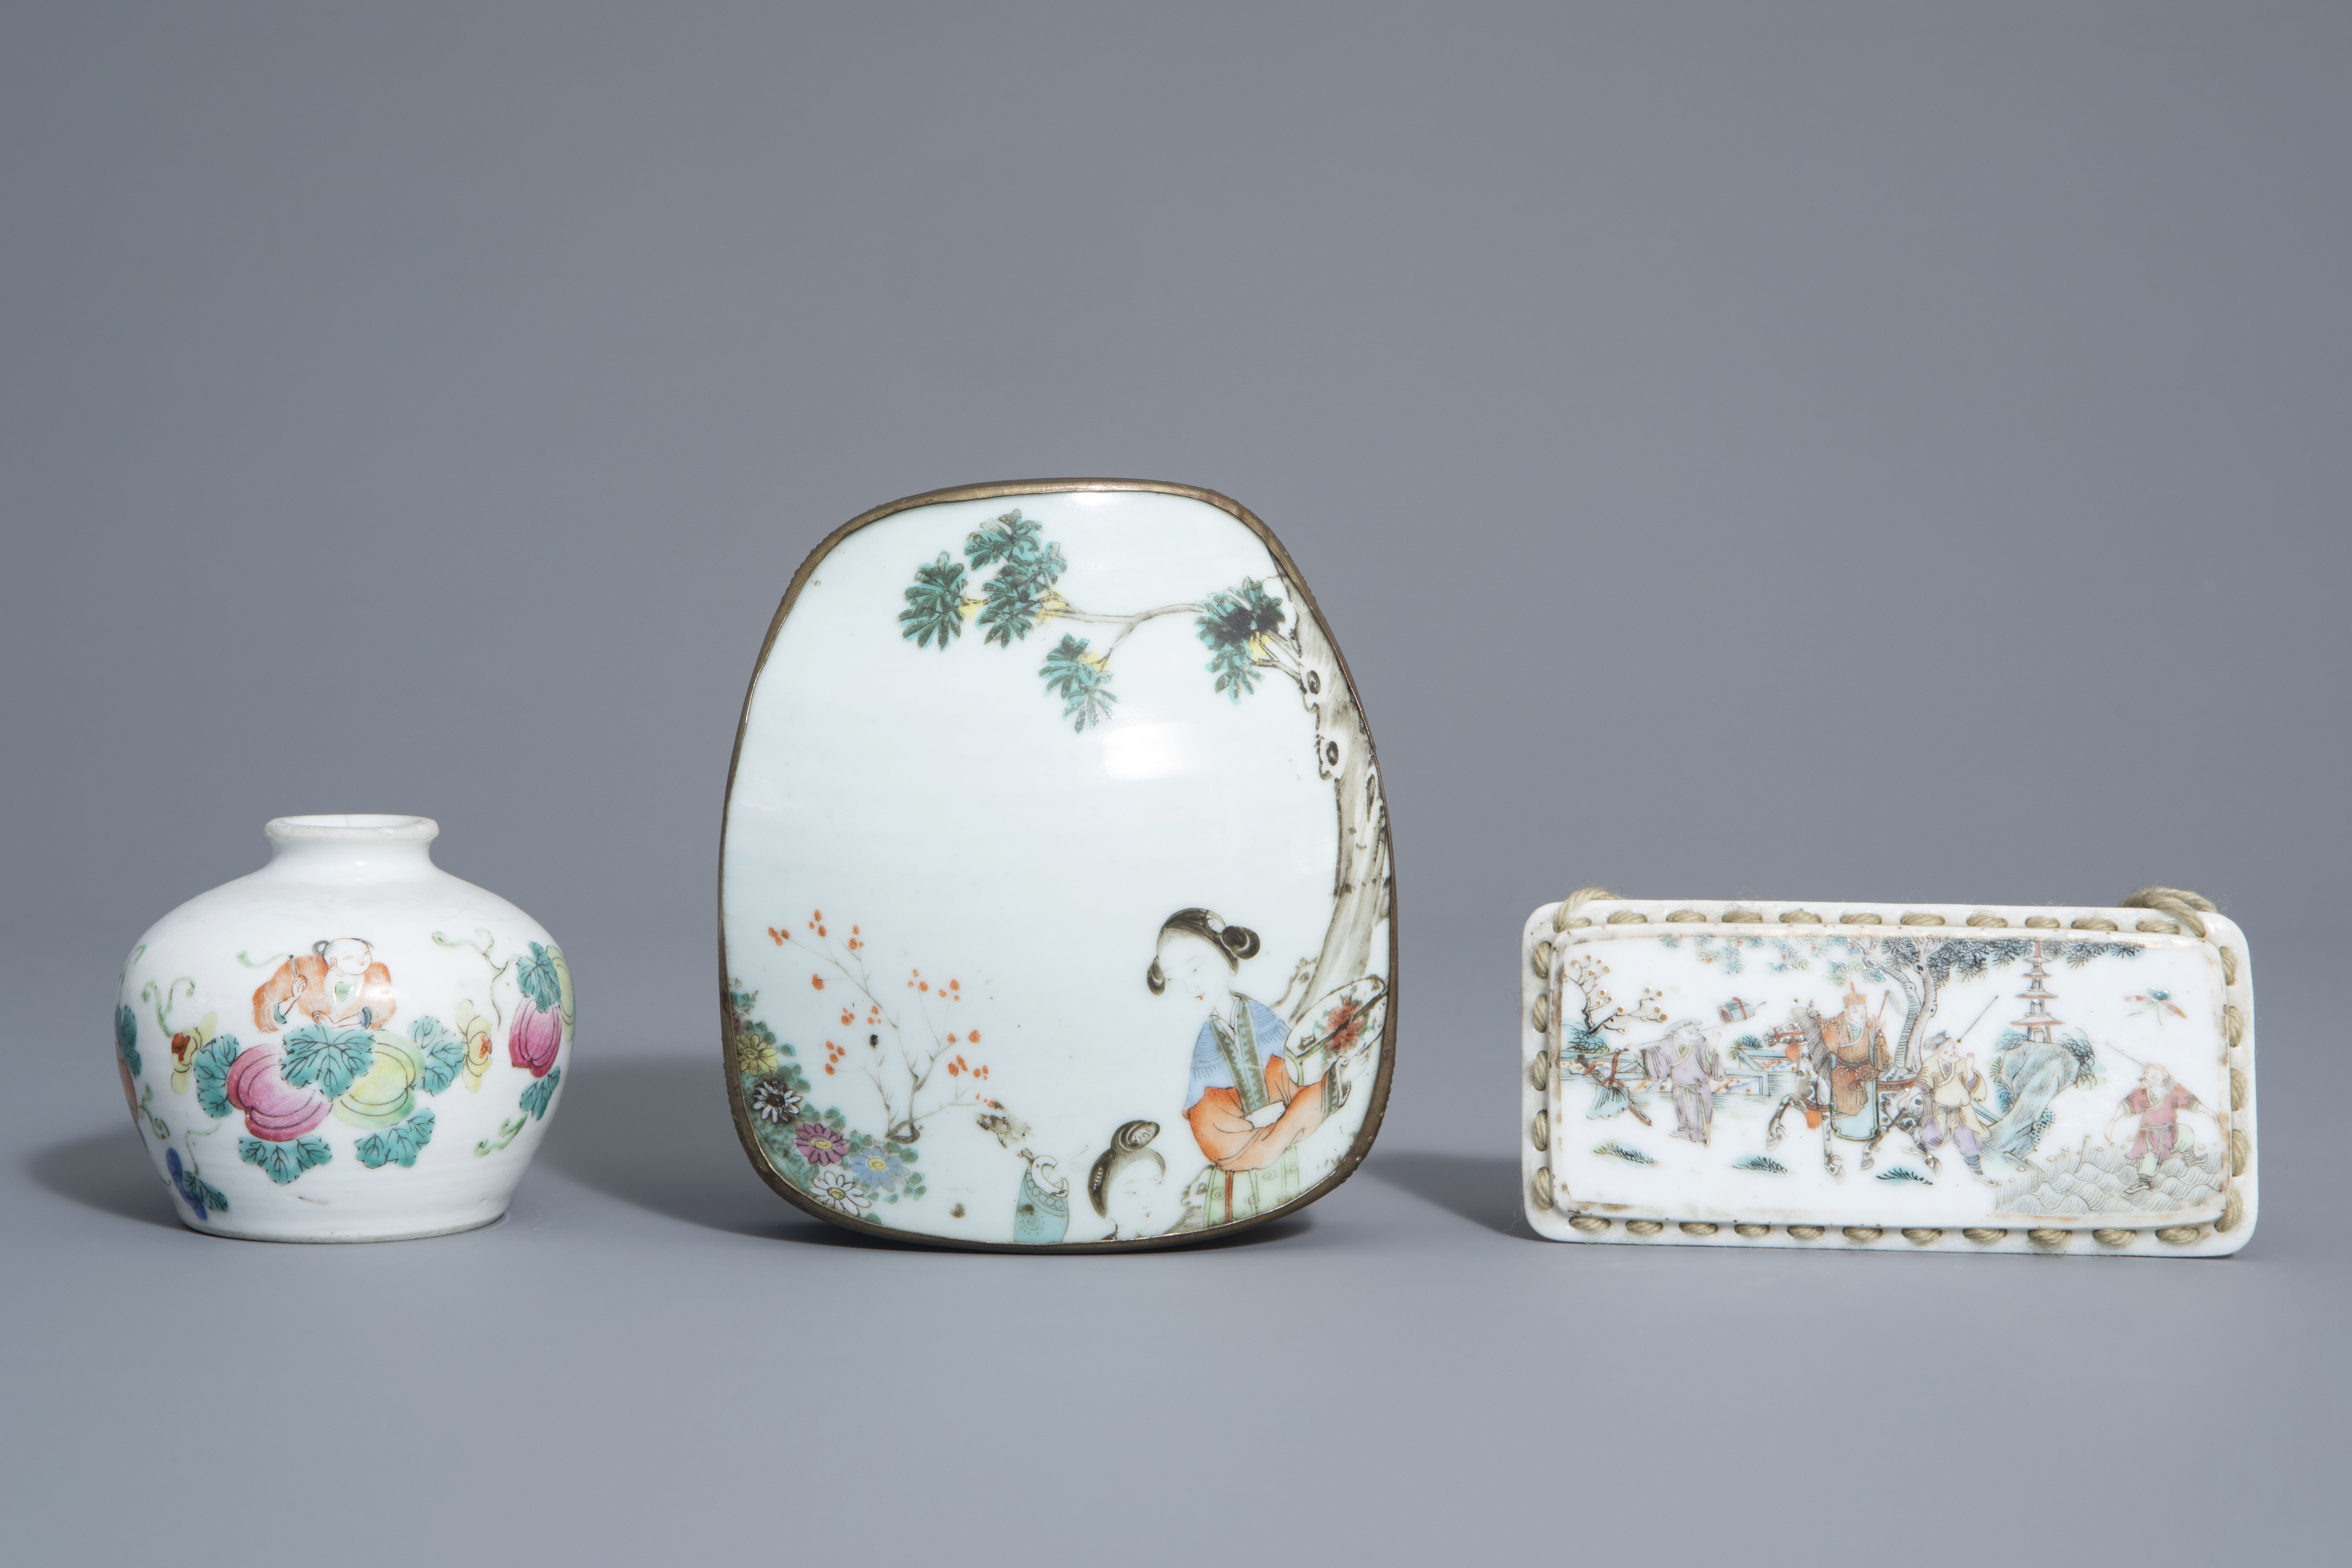 A varied collection of Chinese famille rose and blue and white porcelain, 19th/20th C. - Image 8 of 14